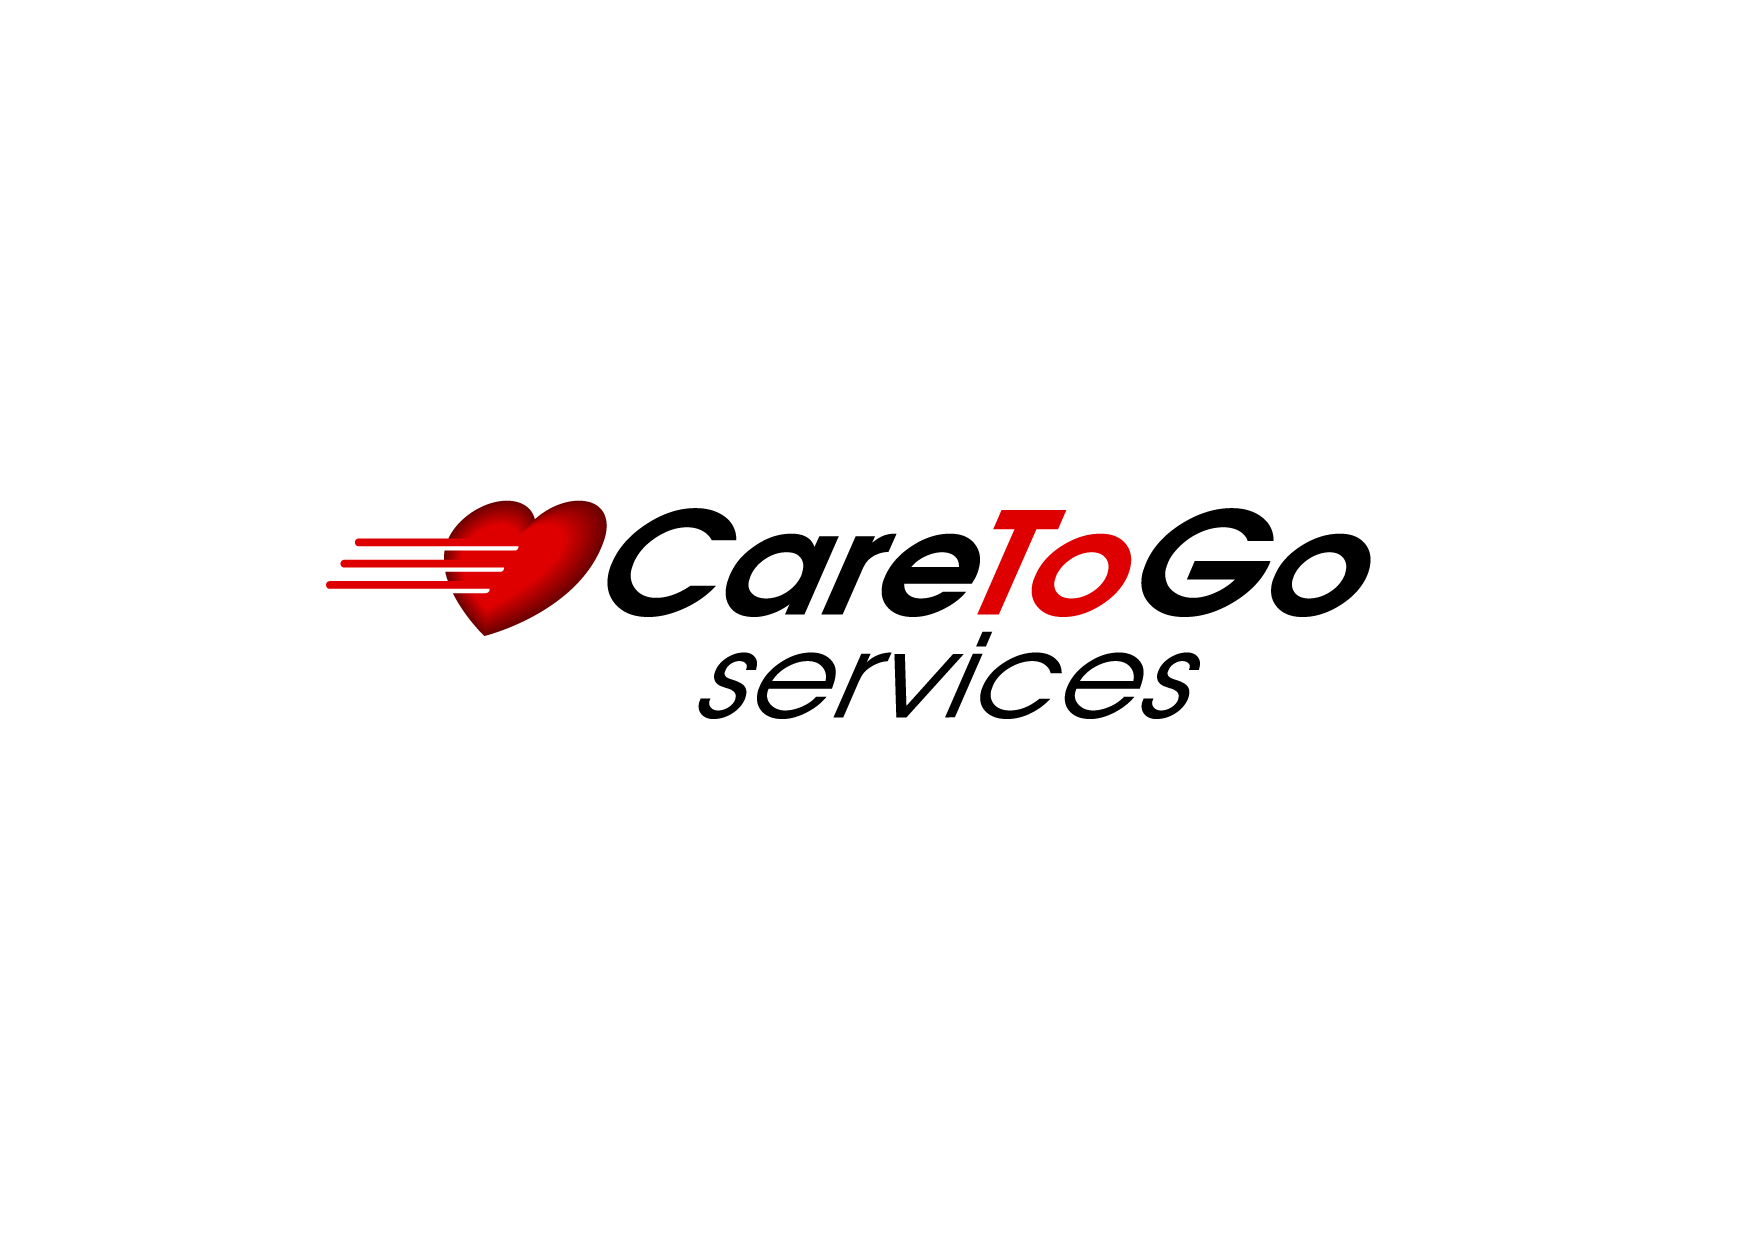 Logo Design by Wilfredo Mendoza - Entry No. 167 in the Logo Design Contest Care To Go Services.